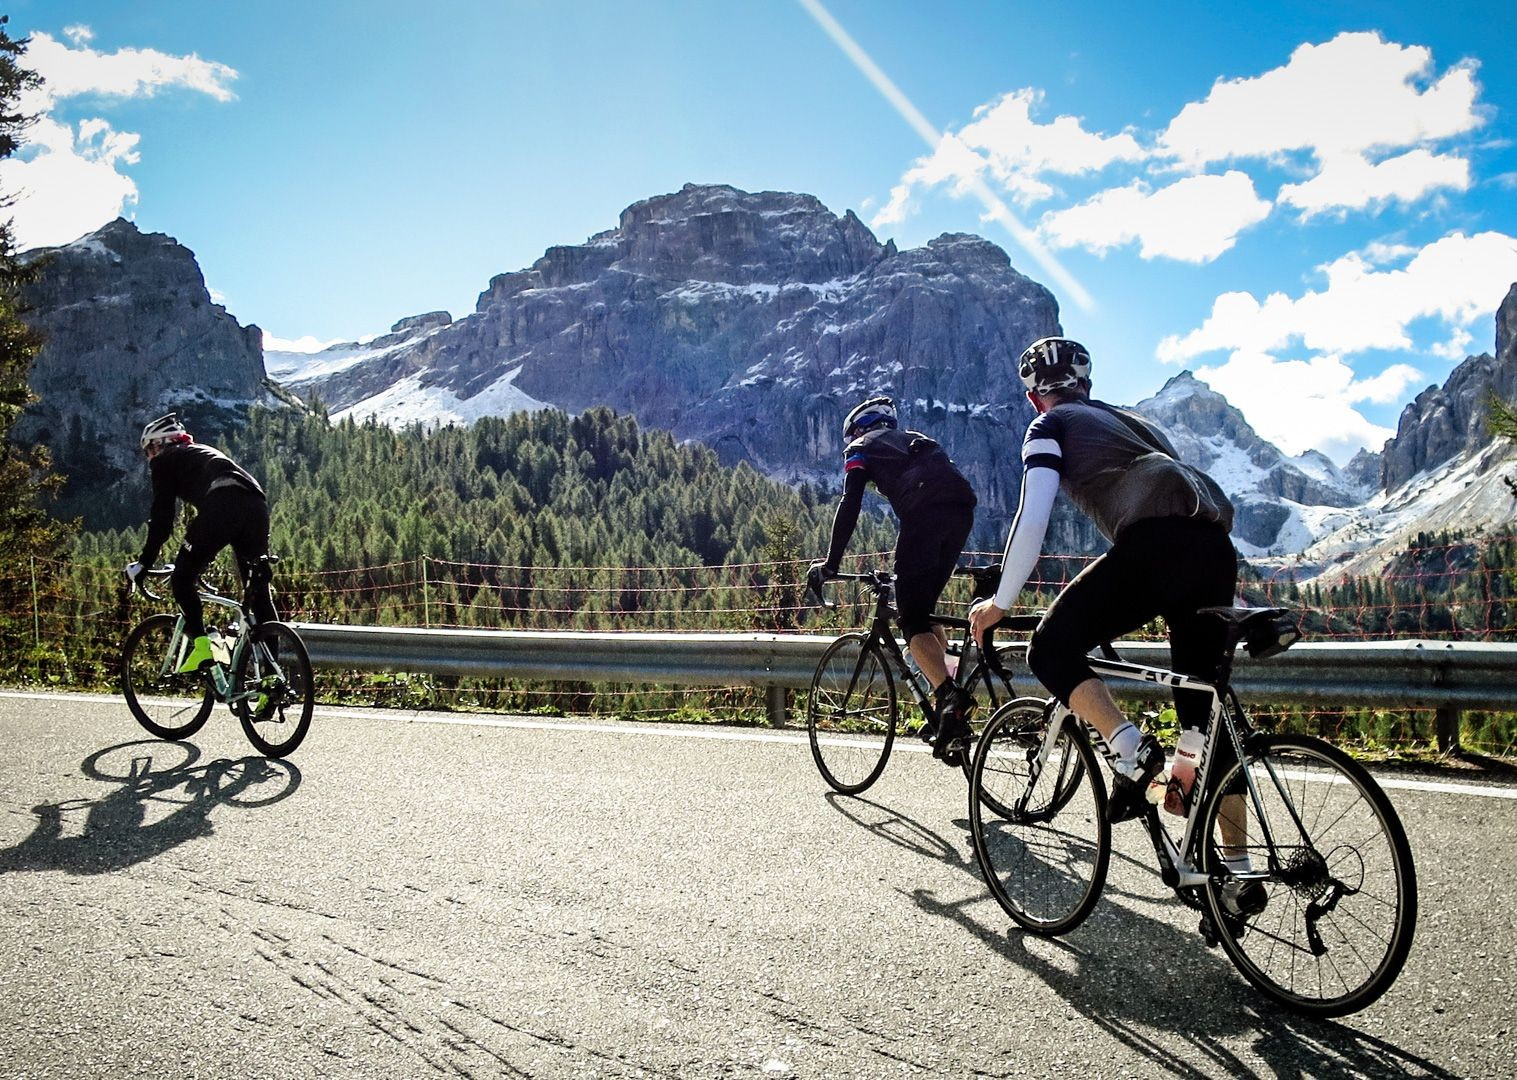 challenging-climbs-italian-dolomites-road-bike-skedaddle.jpg - Italy - Alps and Dolomites - Giants of the Giro - Guided Road Cycling Holiday - Road Cycling